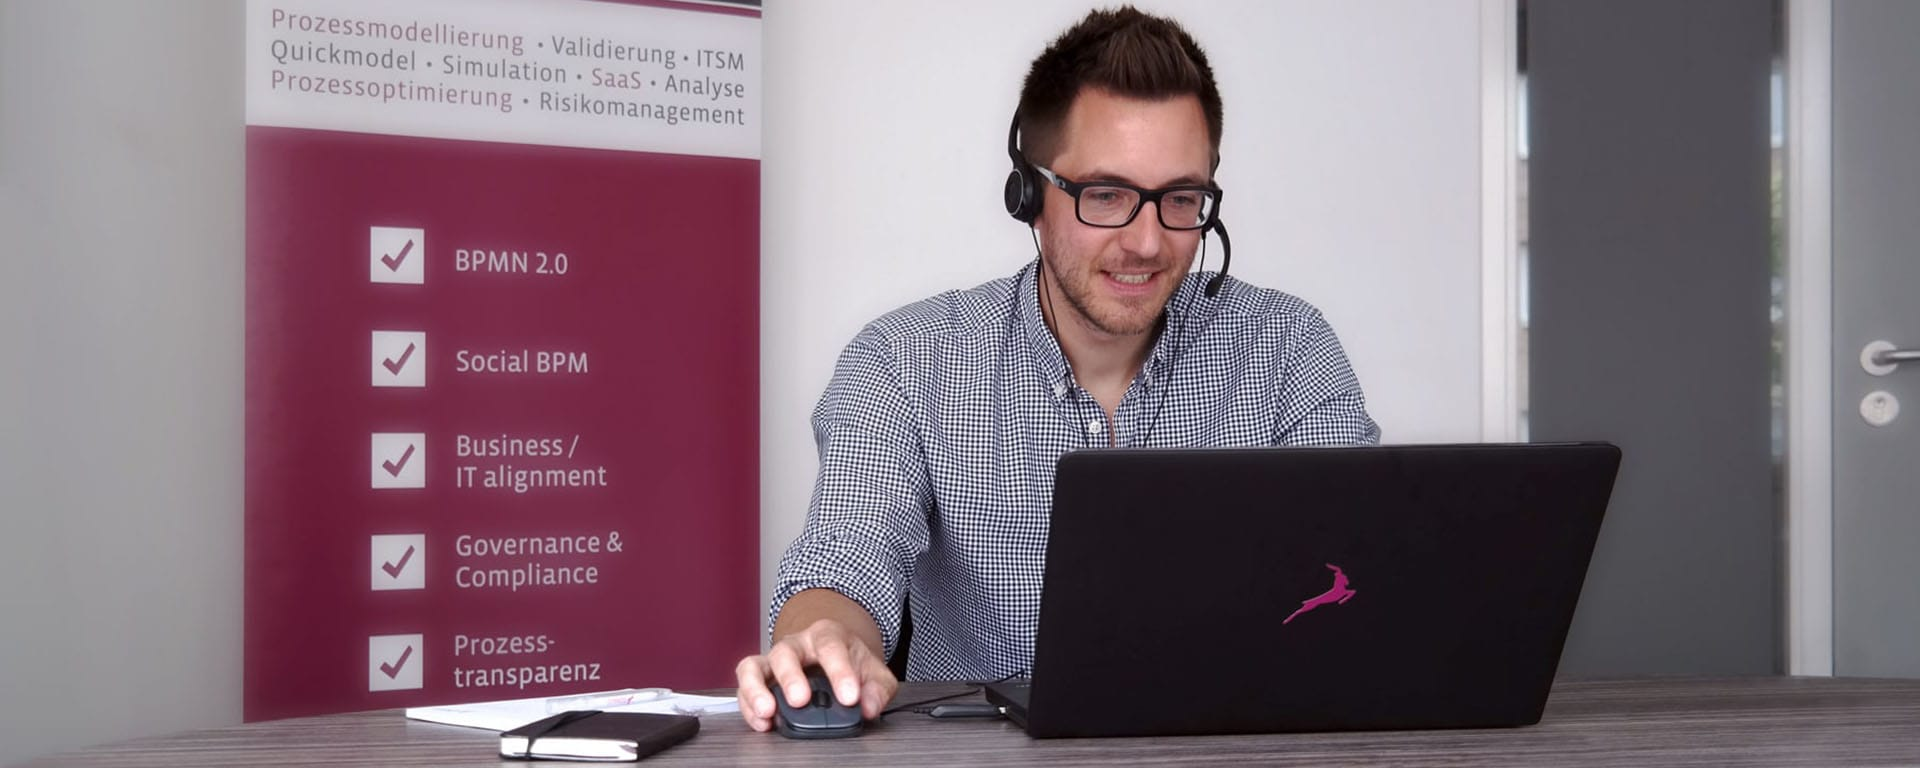 Webinar Expert at his Desk